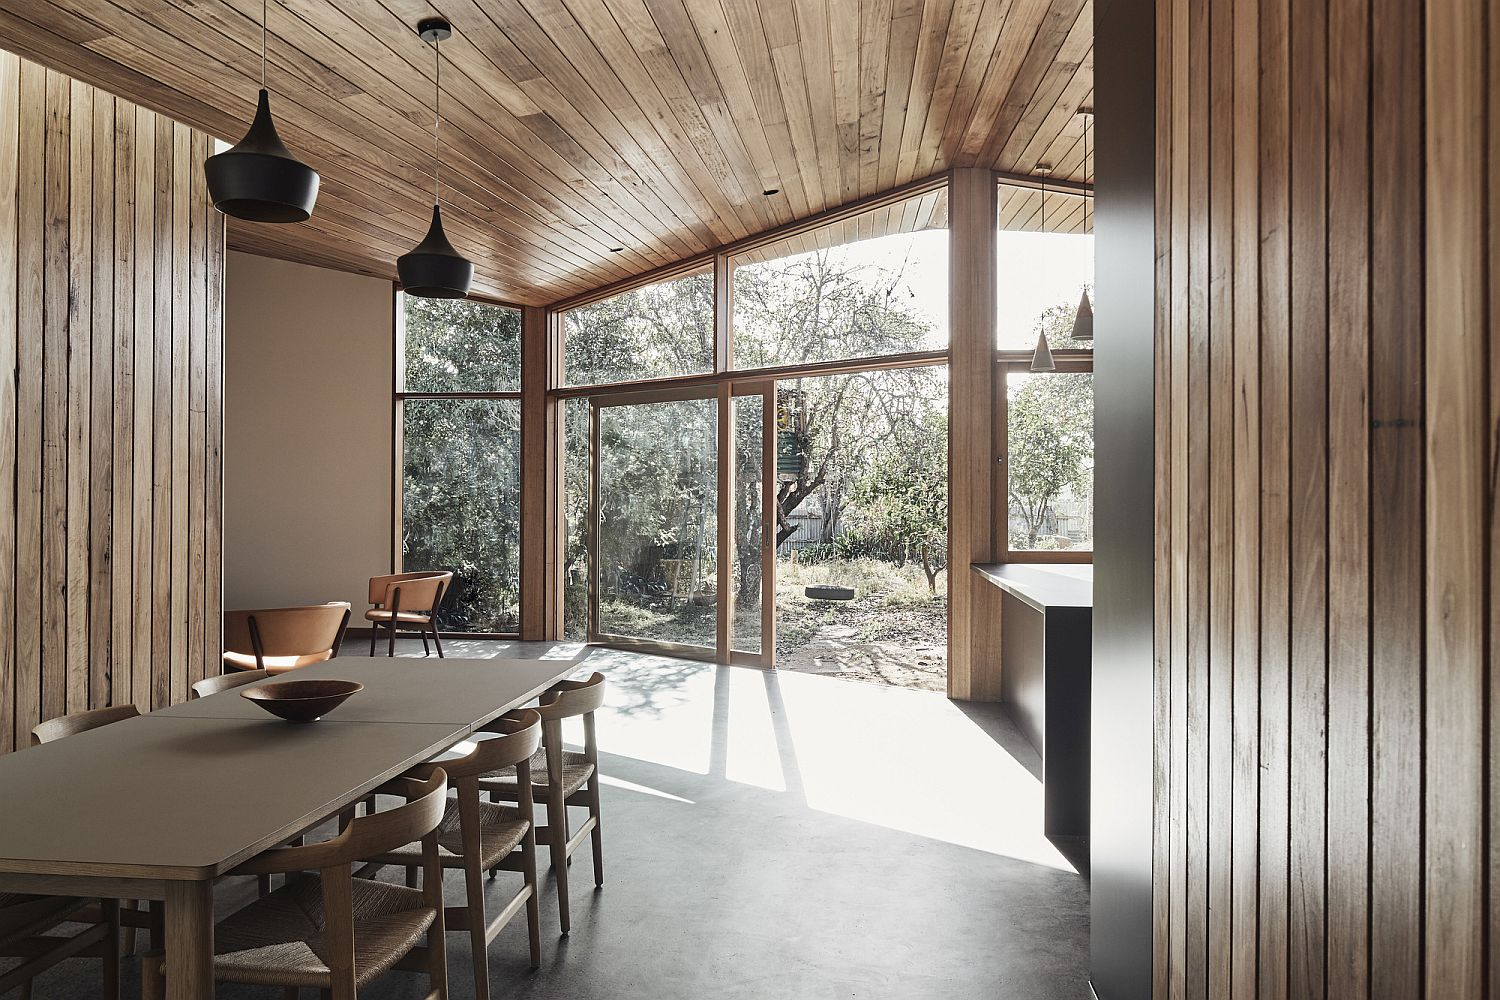 Walls and ceiling draped in wood adds warmth to the interior